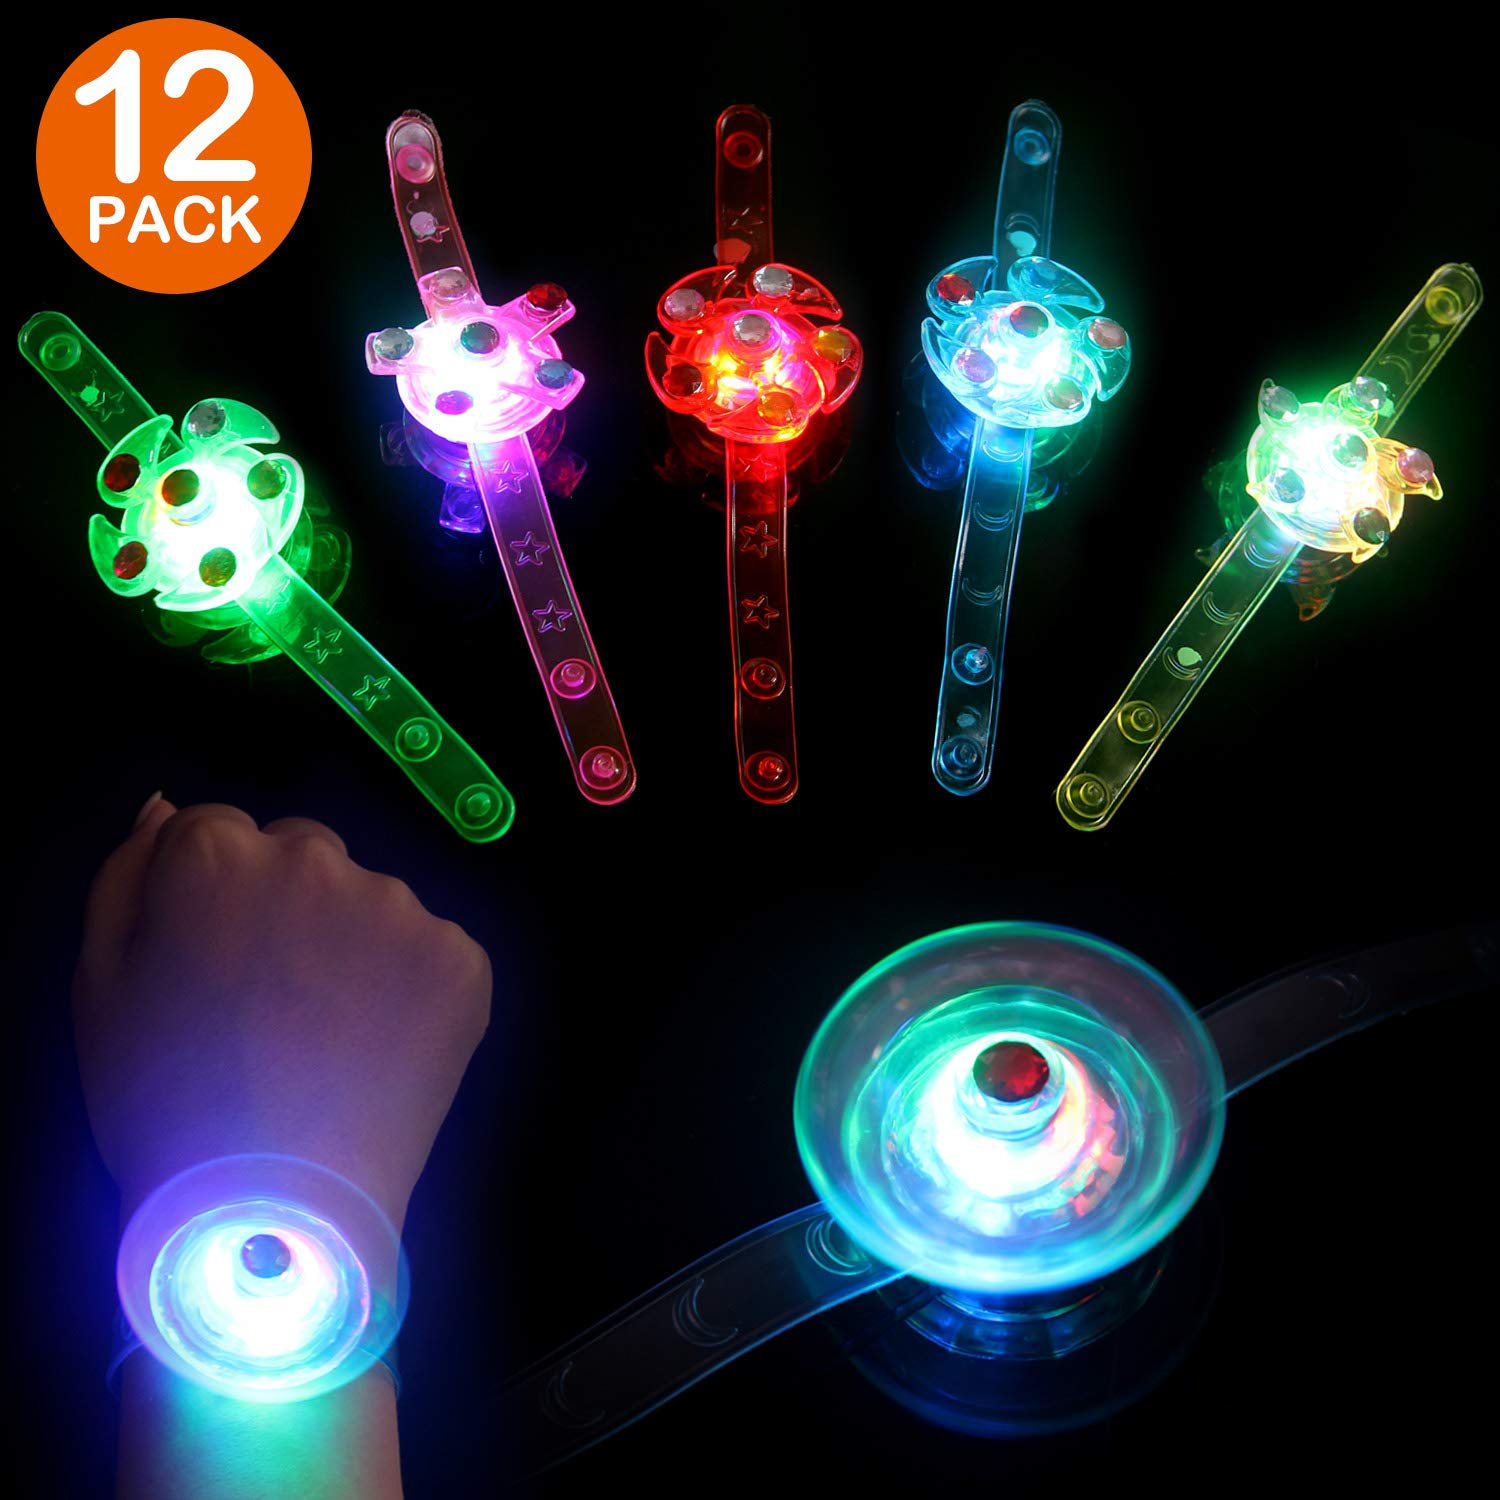 Satkago 12 Pcs Light Up Bracelets Glow Toys Easter Basket Stuffers Gifts Birthday Party Favors for Kids Glow in The Dark Toys